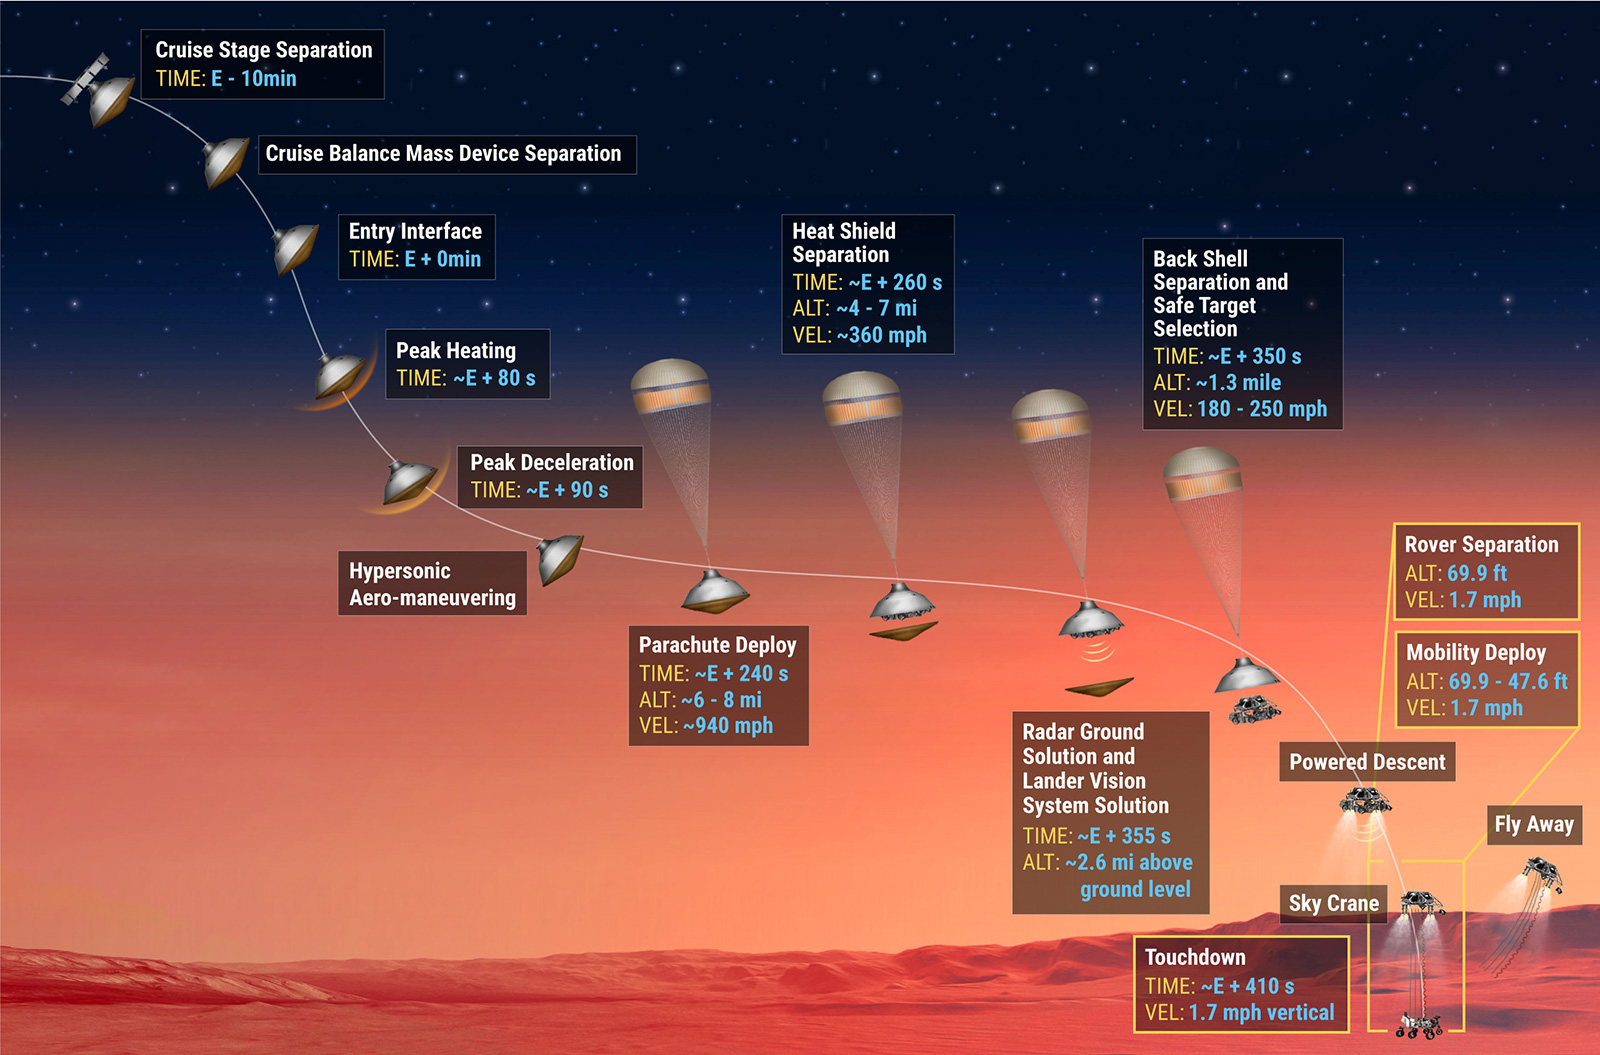 Schematic illustration highlighting the key steps of the Mars Perseverance landing, from cruise stage separation to rover touchdown.